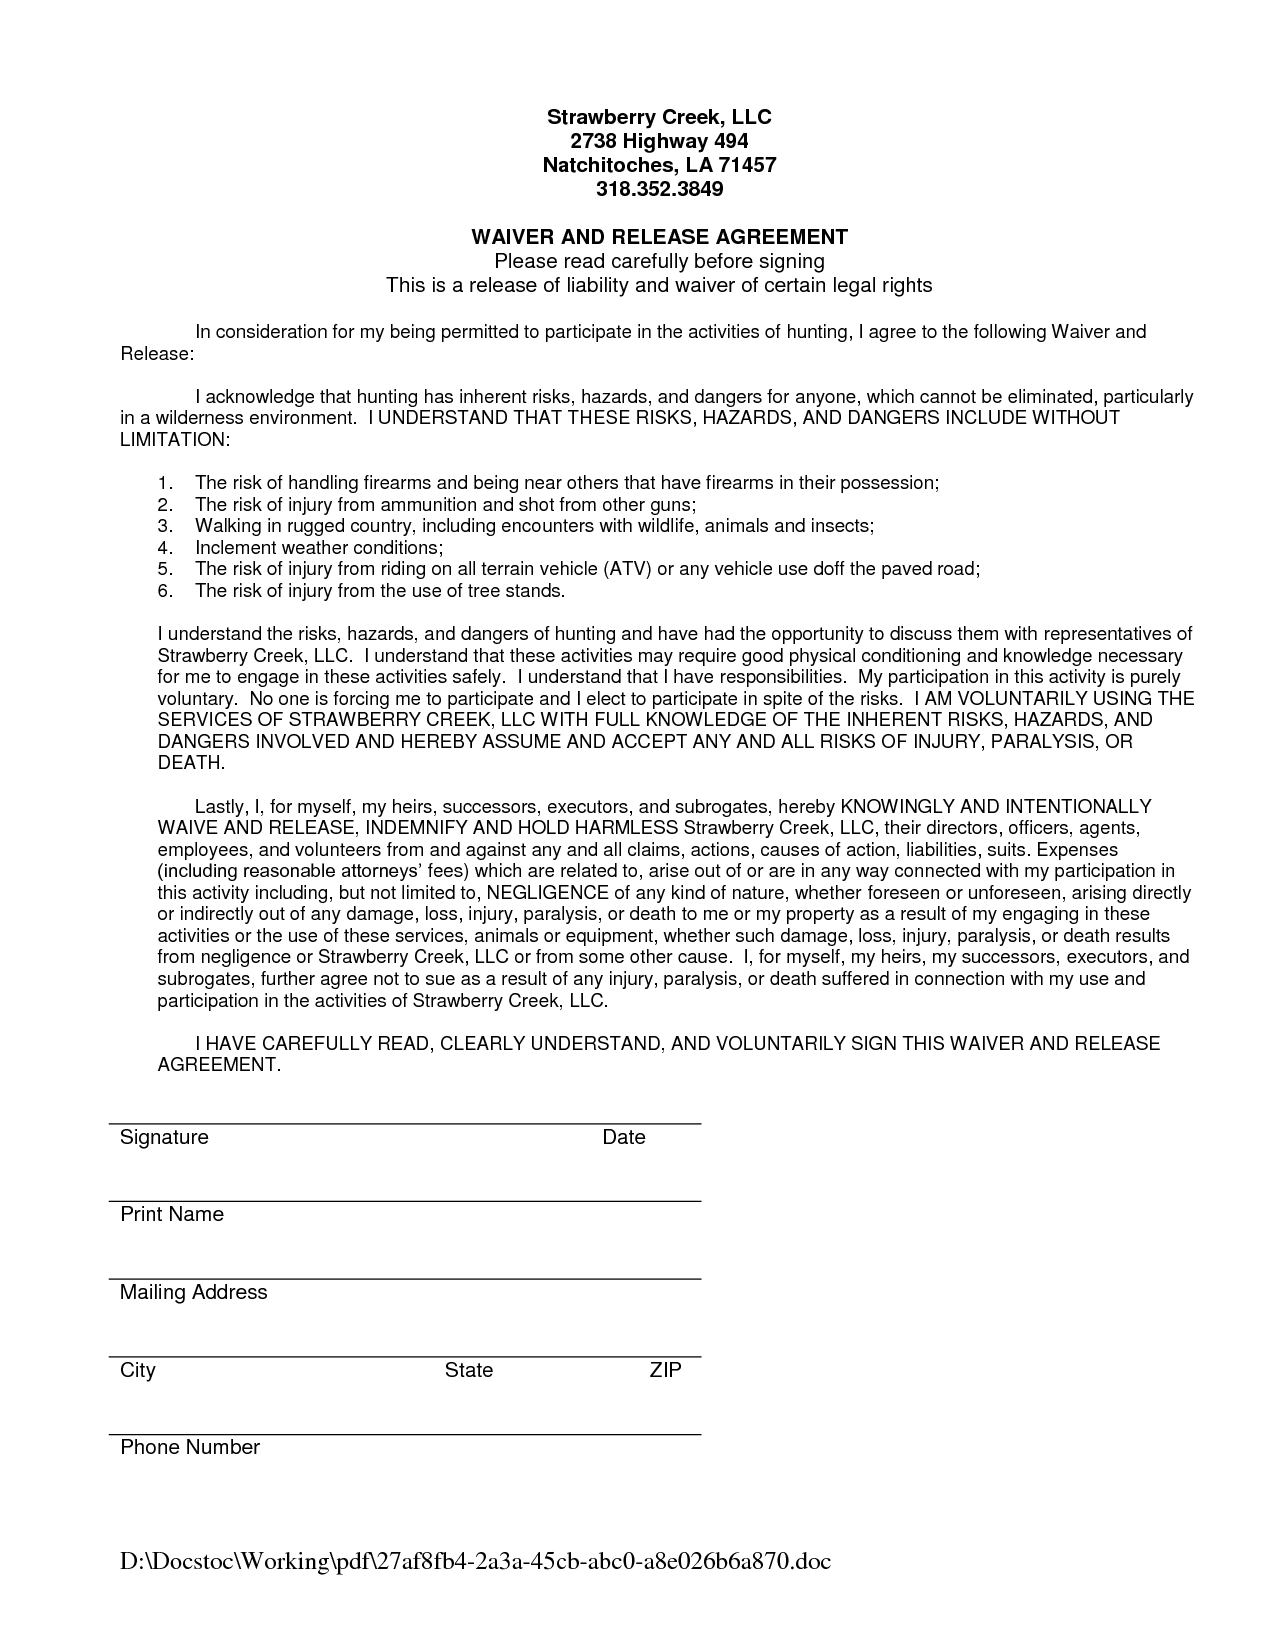 Doc575709 Release of Liability Form Sample Release of – Waiver Template for Liability